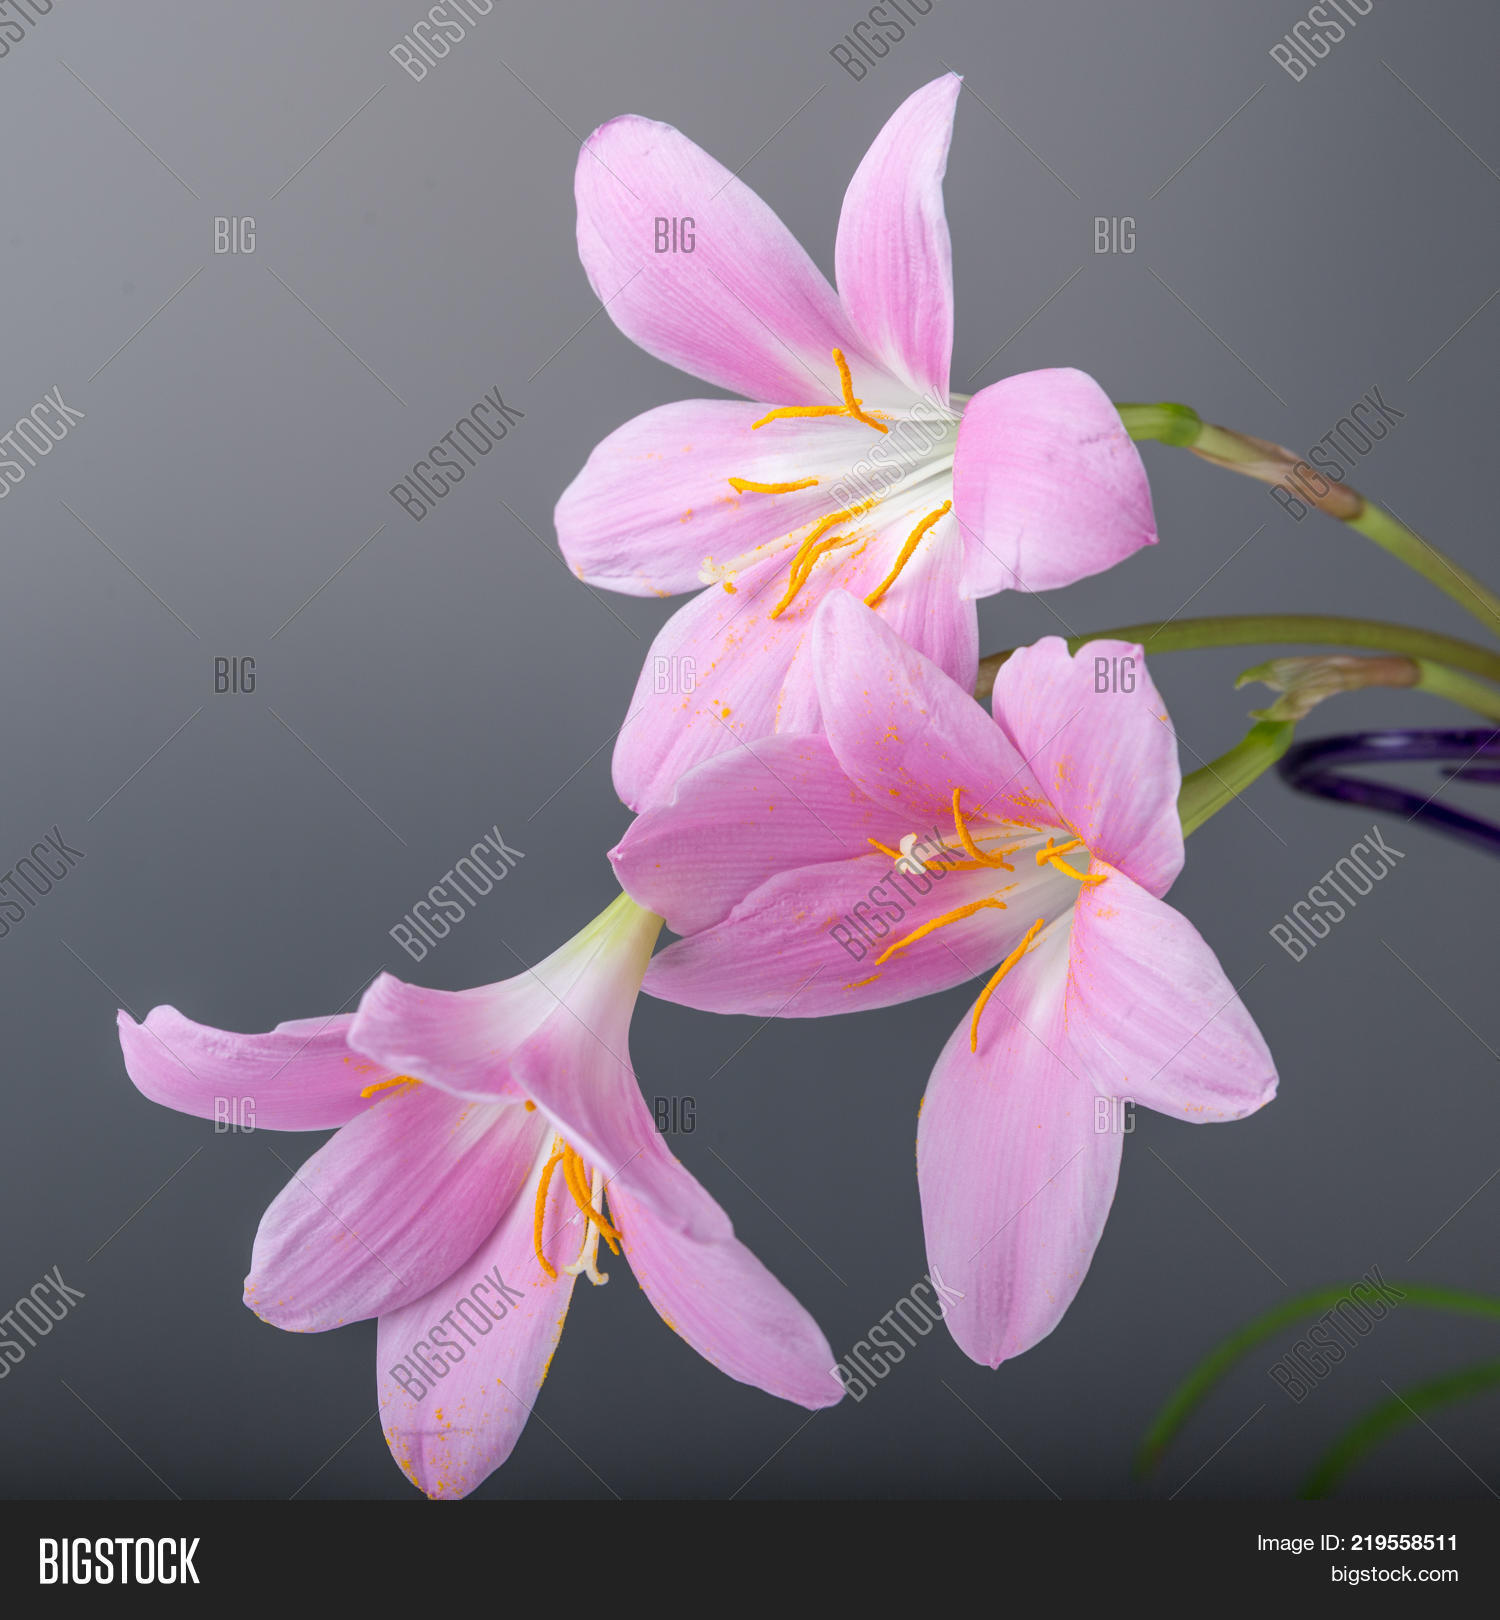 Rosepink Zephyr Lily Image Photo Free Trial Bigstock